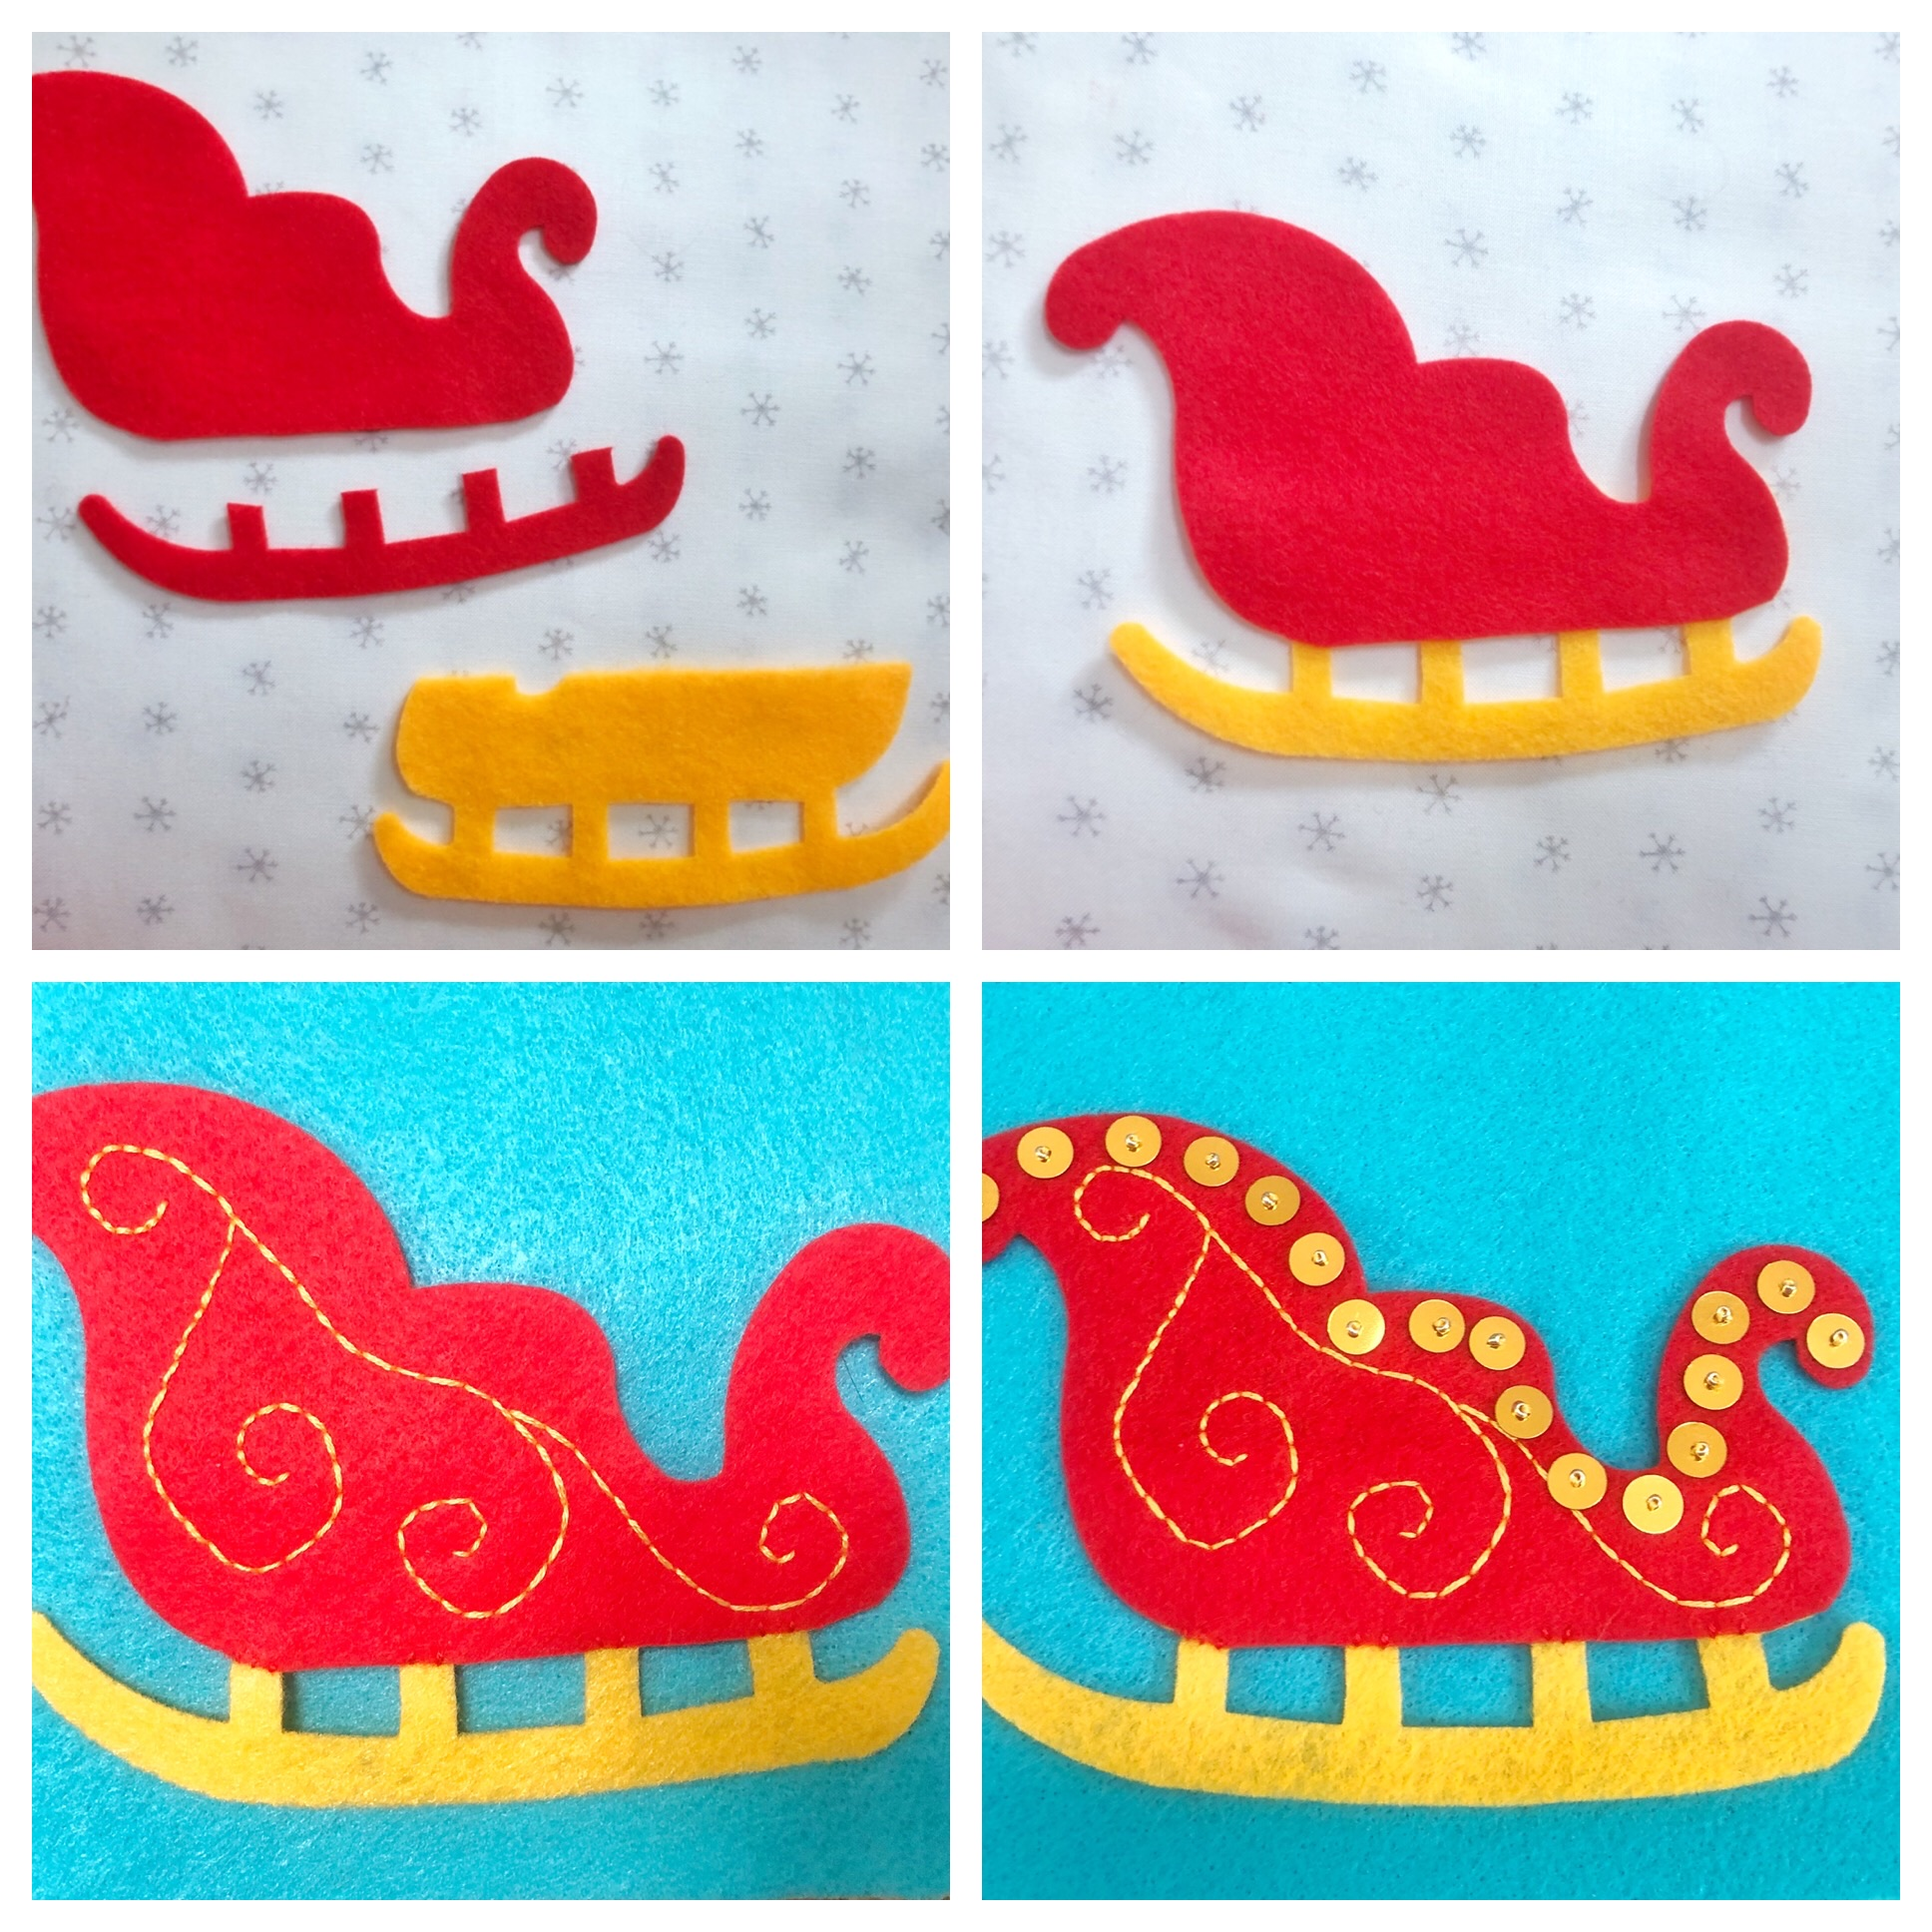 santa's sleigh applique stocking decor